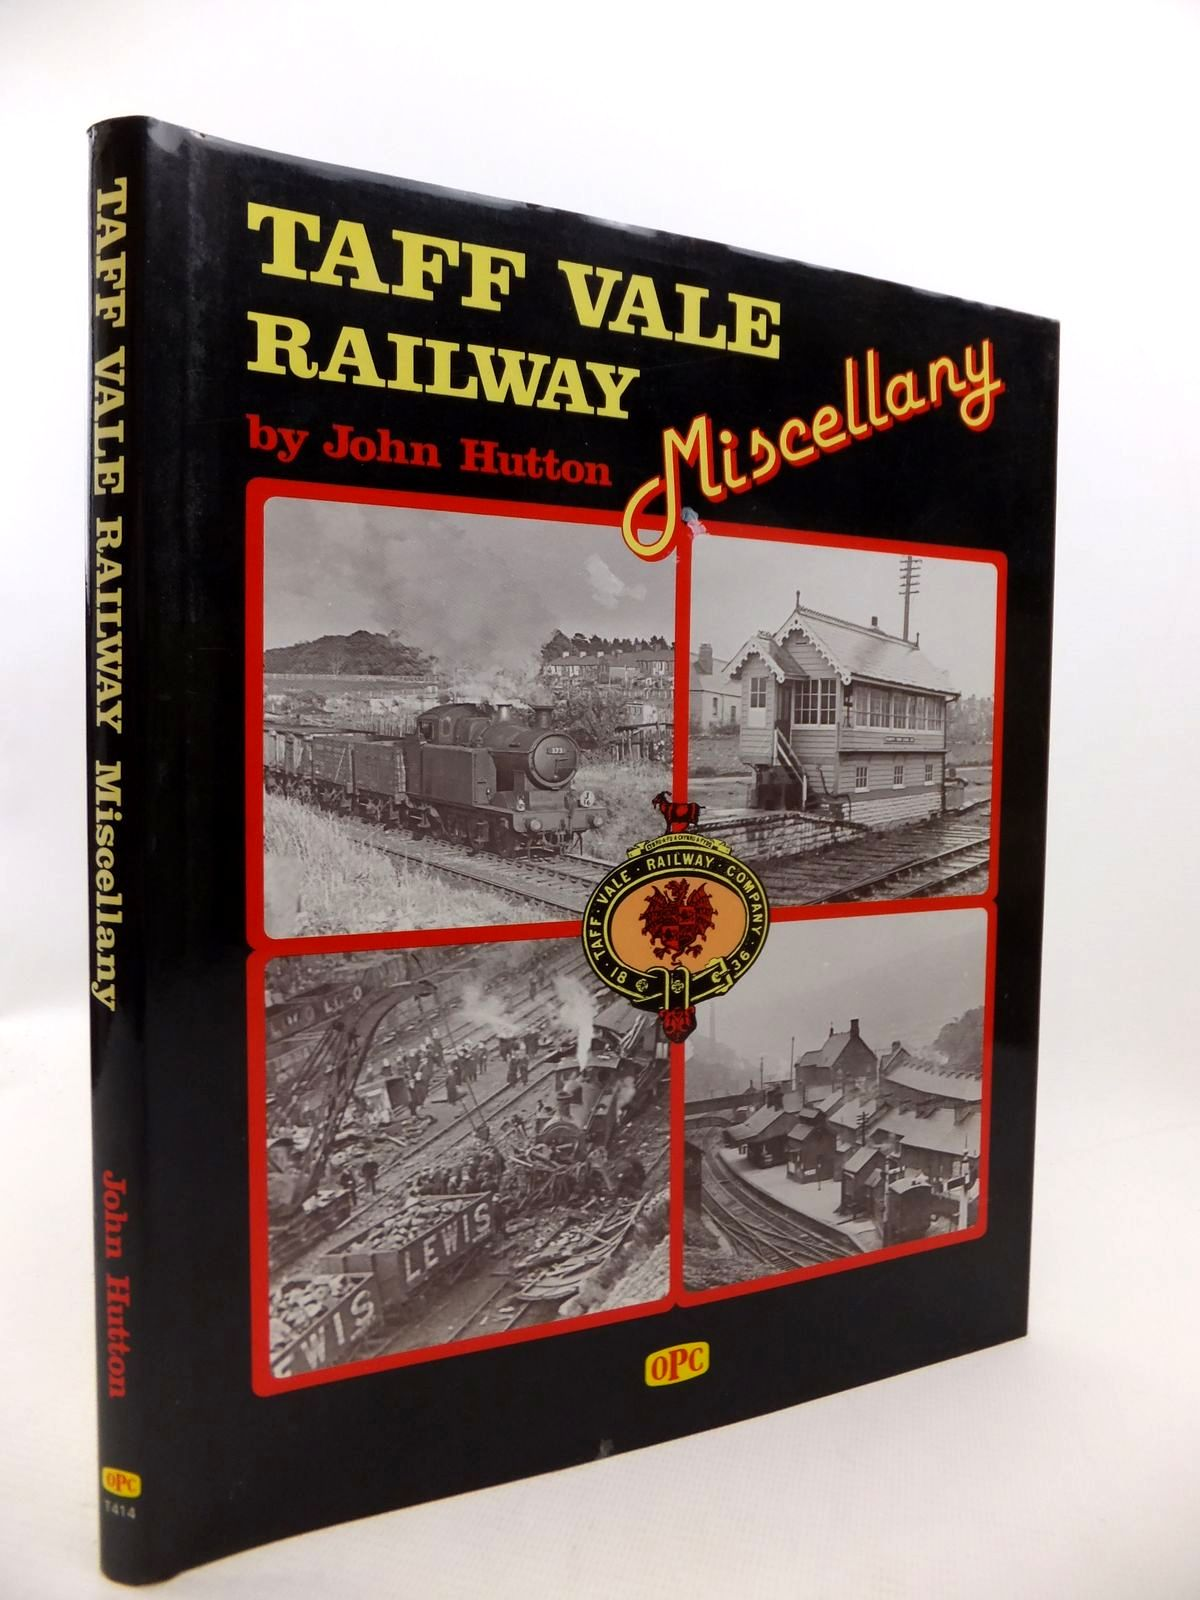 Photo of TAFF VALE RAILWAY MISCELLANY written by Hutton, John published by Haynes, Oxford Publishing Co (STOCK CODE: 1813530)  for sale by Stella & Rose's Books